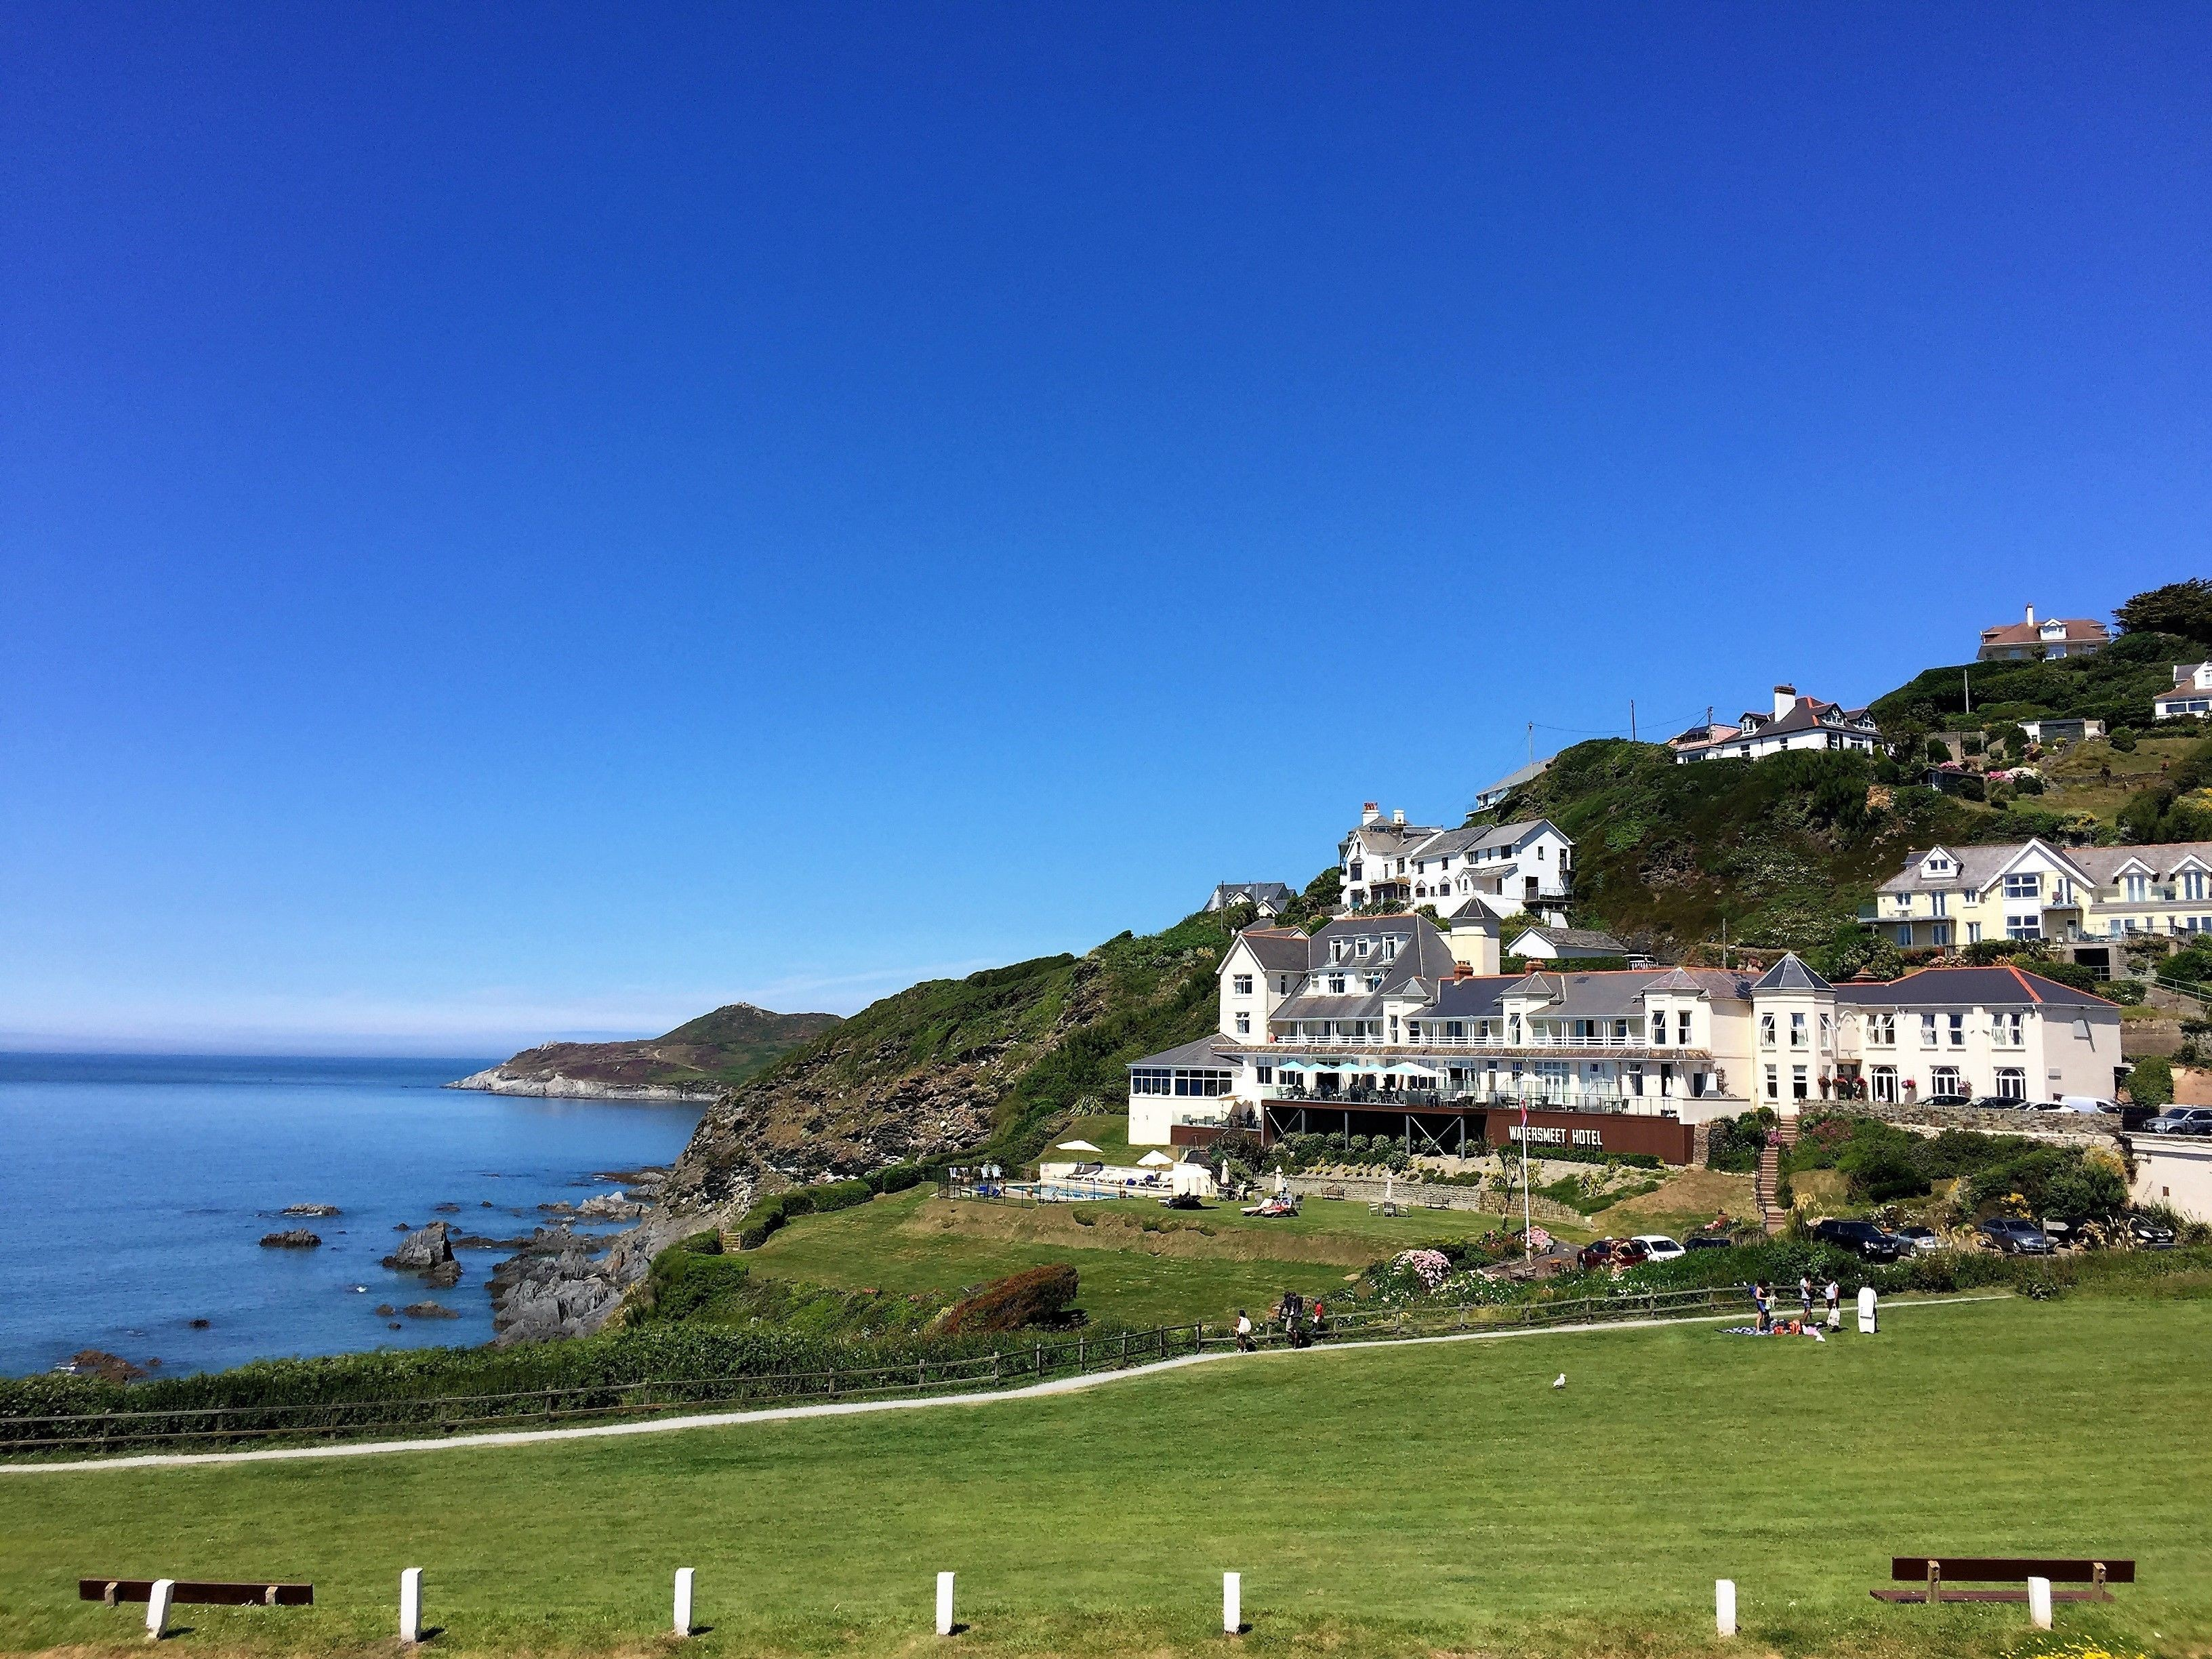 Courtesy of Watersmeet Hotel / Expedia